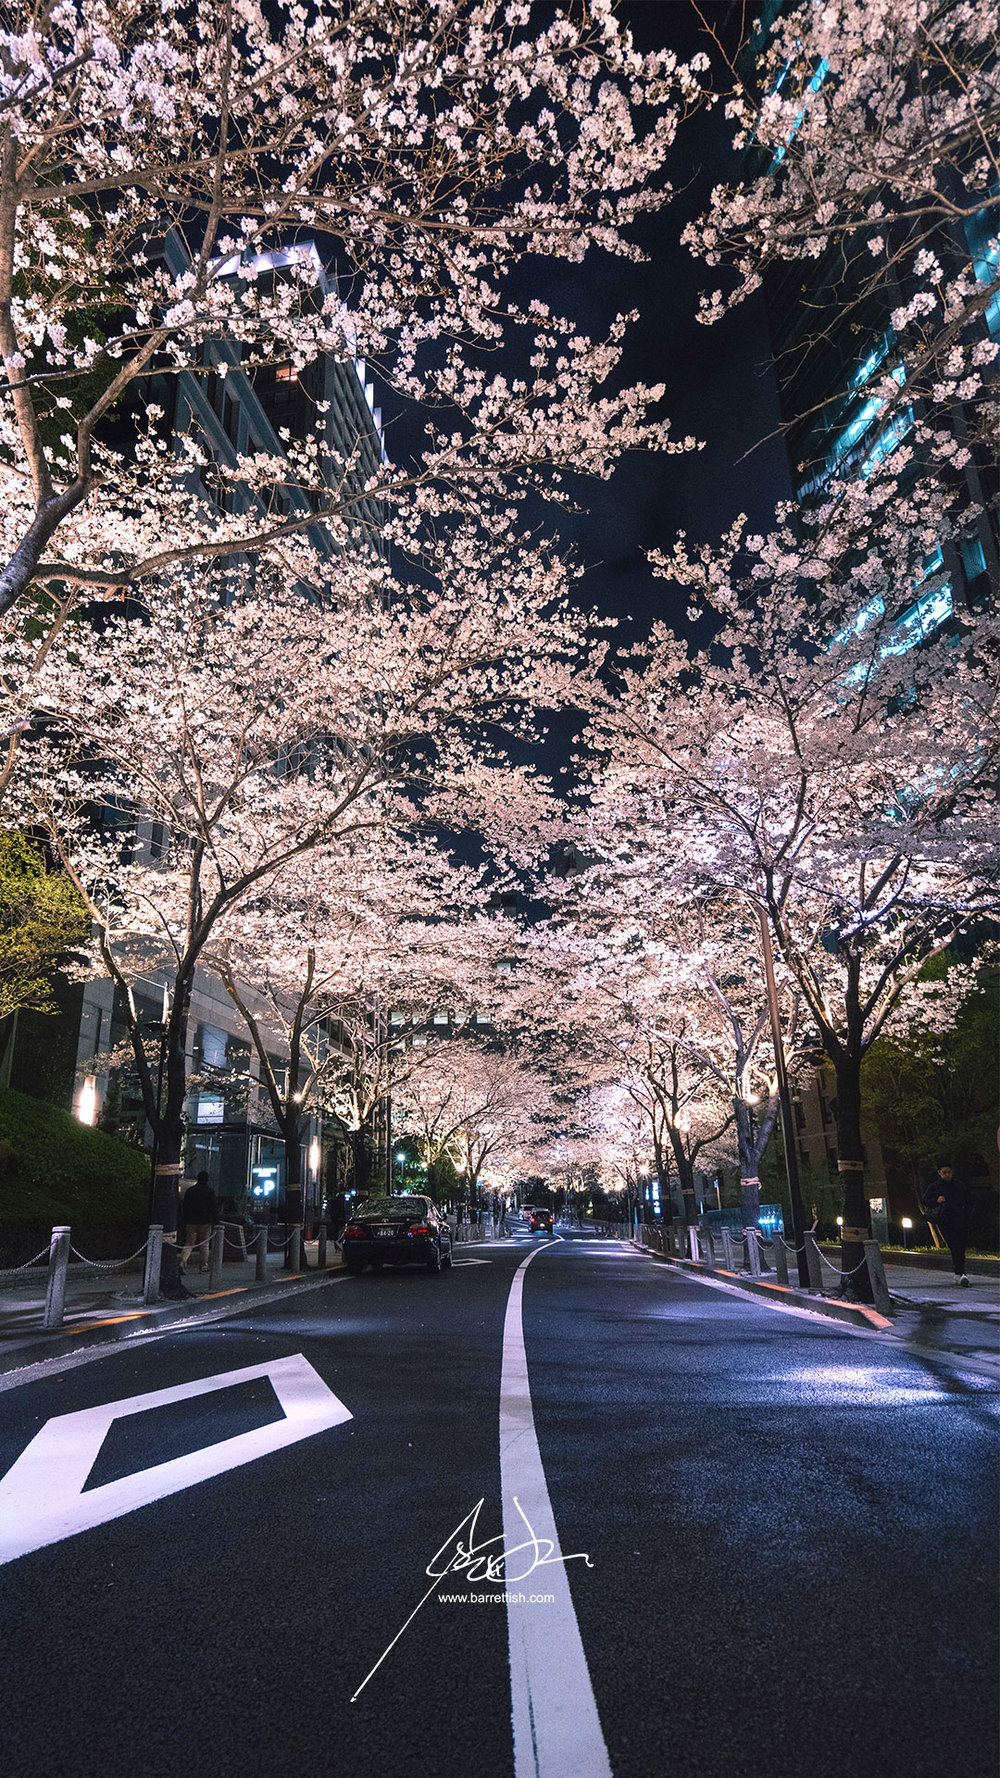 Illuminated cherry blossoms along the quiet streets around Ark Hills, Tokyo   DOWNLOAD